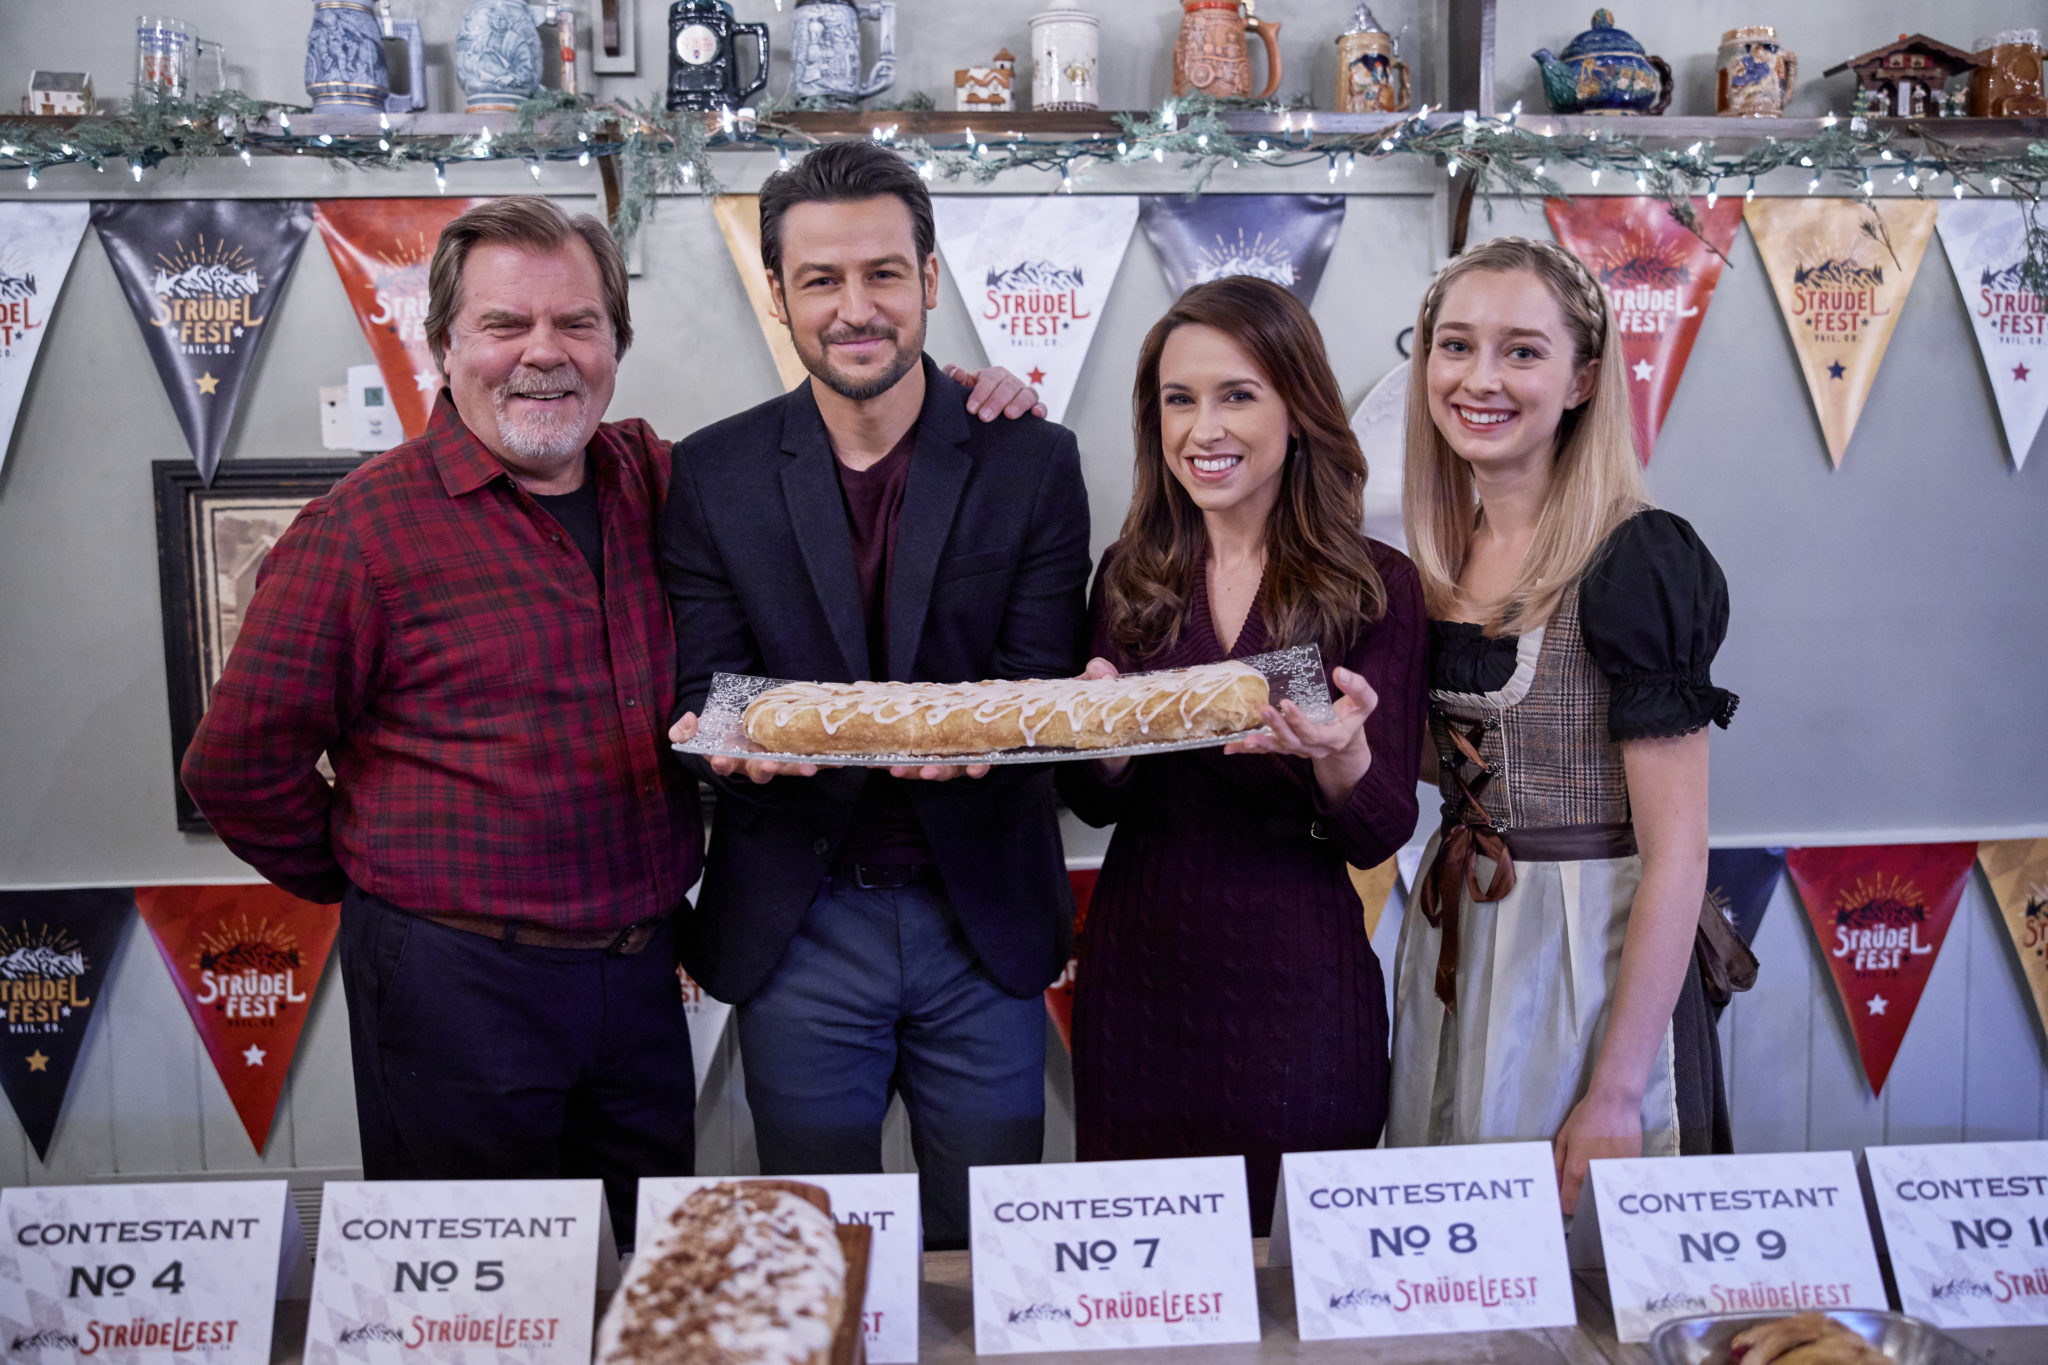 When professional event planner Chelsea Whitmore inherits a chalet in Vail, she quits her job and moves to the picturesque mountain resort to write the next chapter in her life, which just might include an unlikely romance with handsome local Owen Becker. Photo: Greg Lawson, Tyler Hynes, Lacey Chabert, Sage Kitchen Credit: ©2019 Crown Media United States LLC/Photographer:David Brown